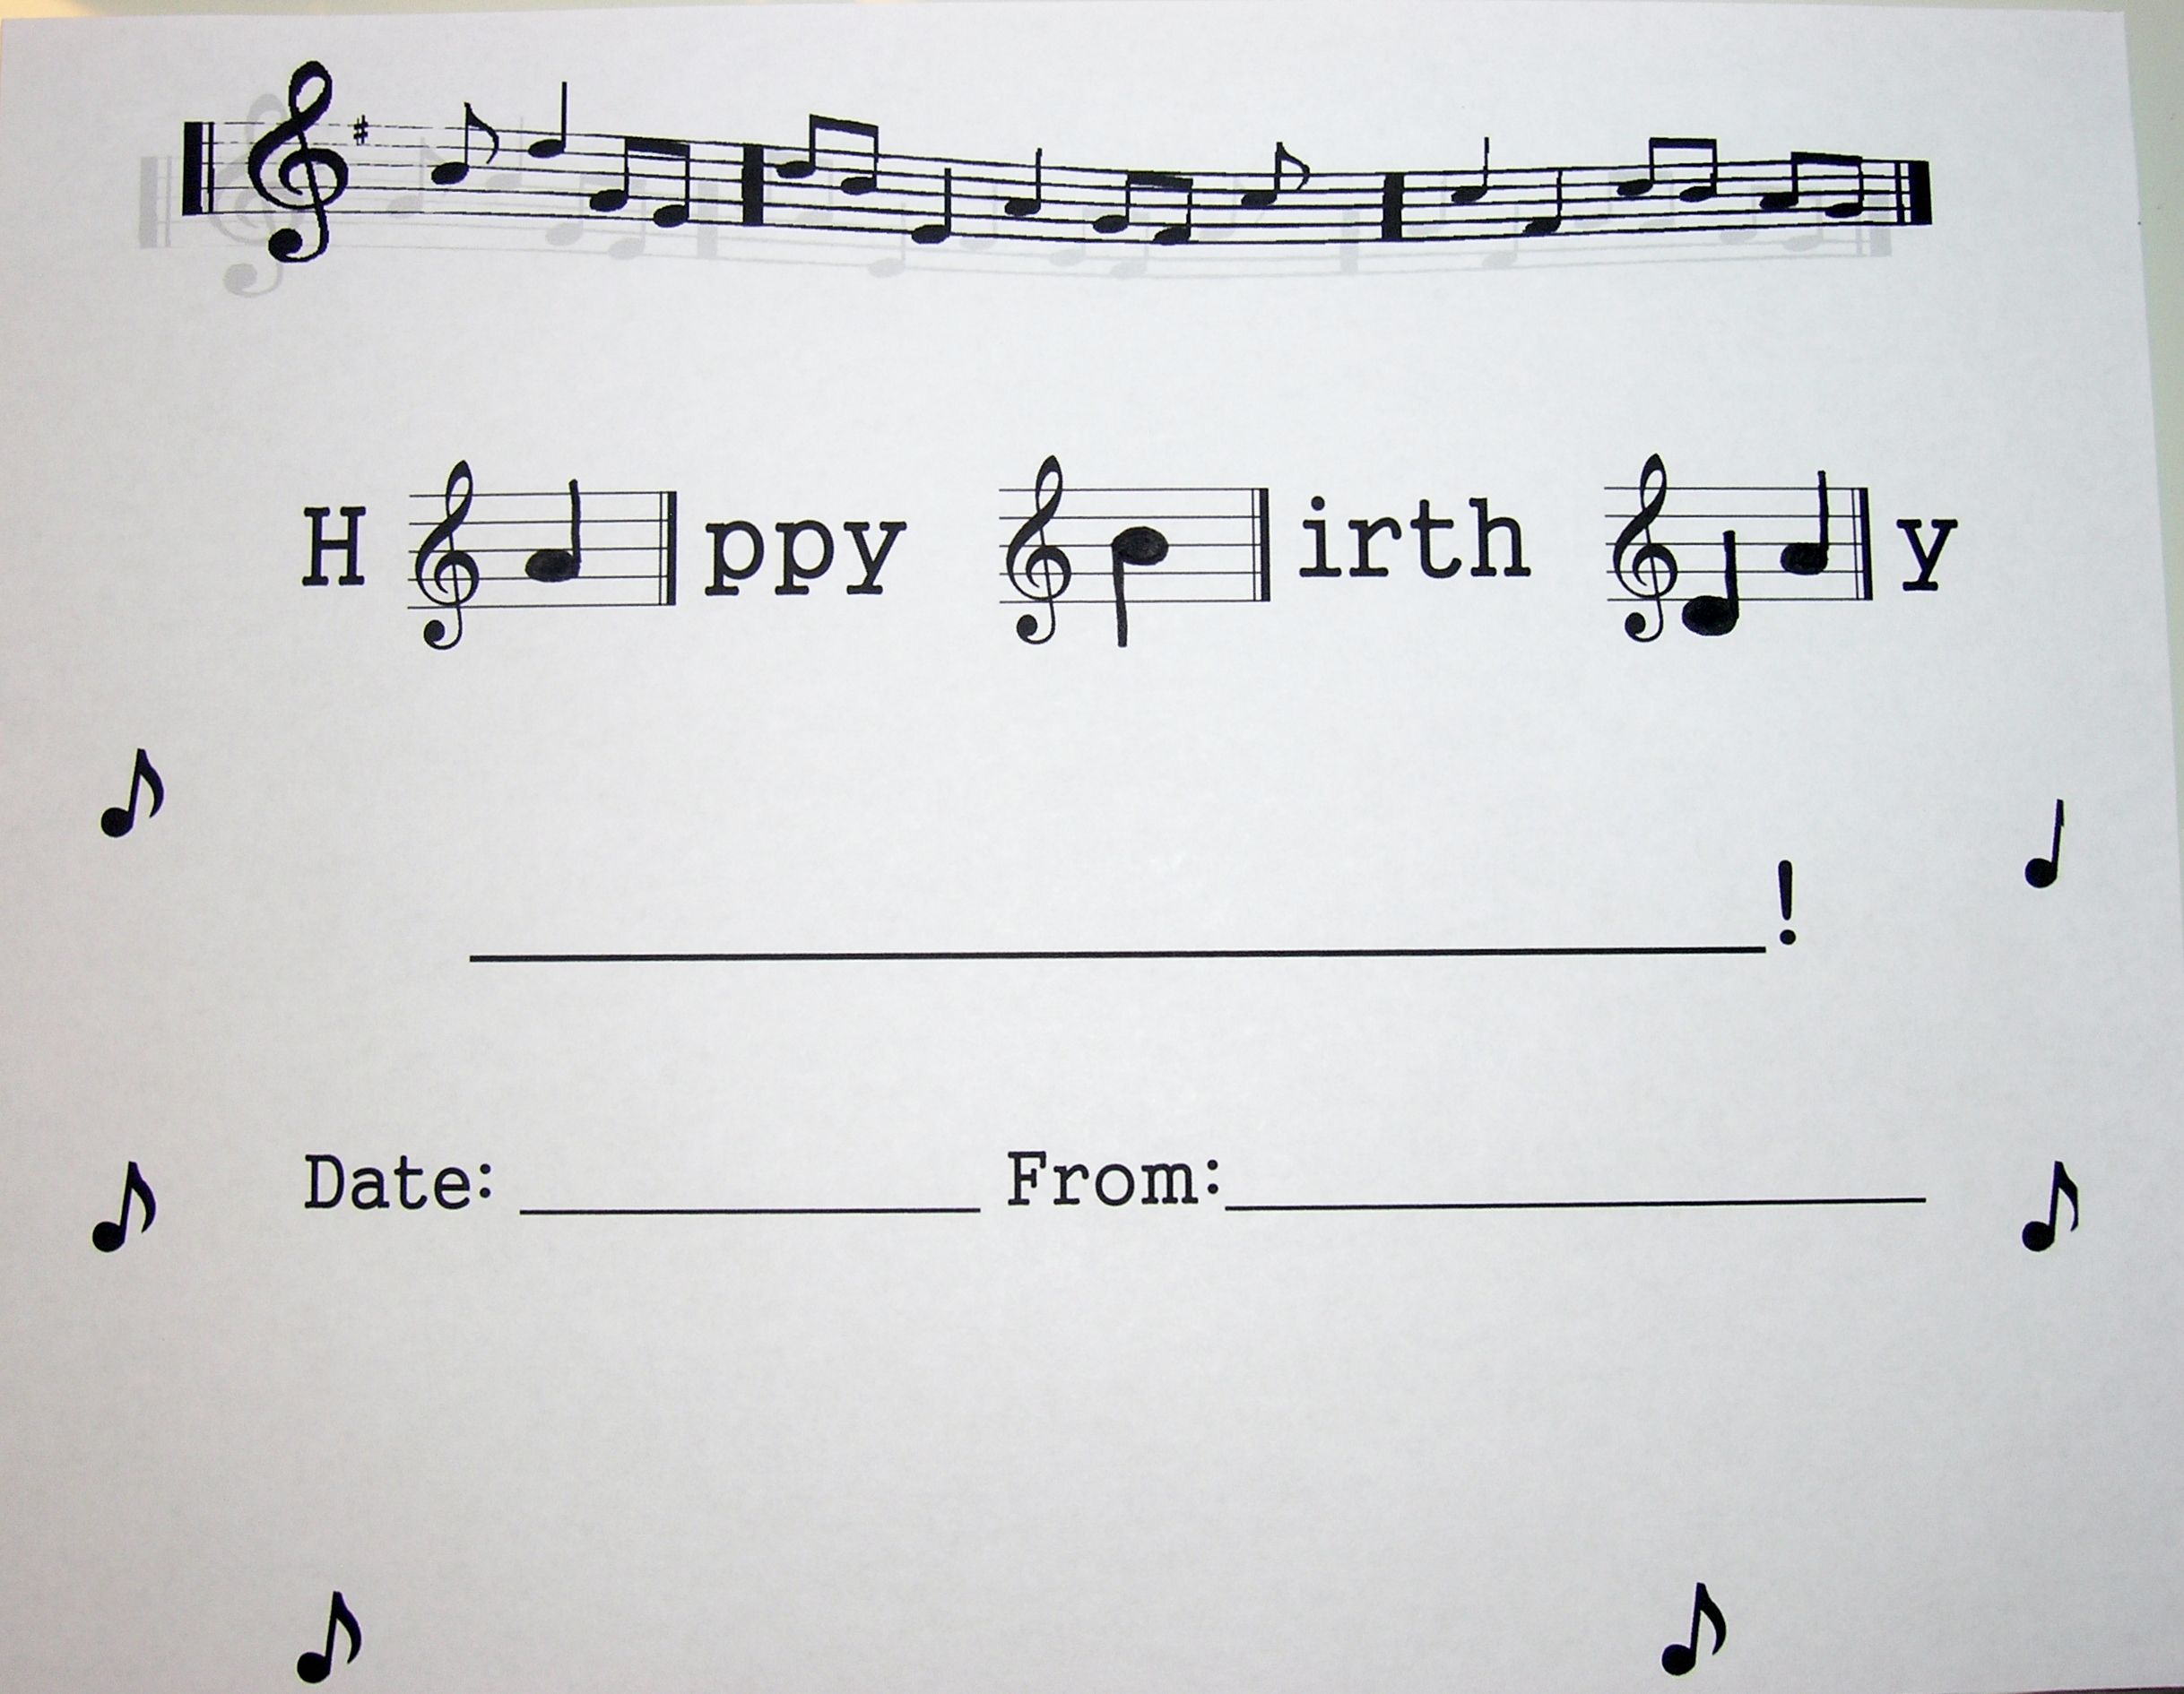 Piano birthday certificate--PDF printable and downloadable piano sheet music for Happy Birthday song. SO dang cute!!!